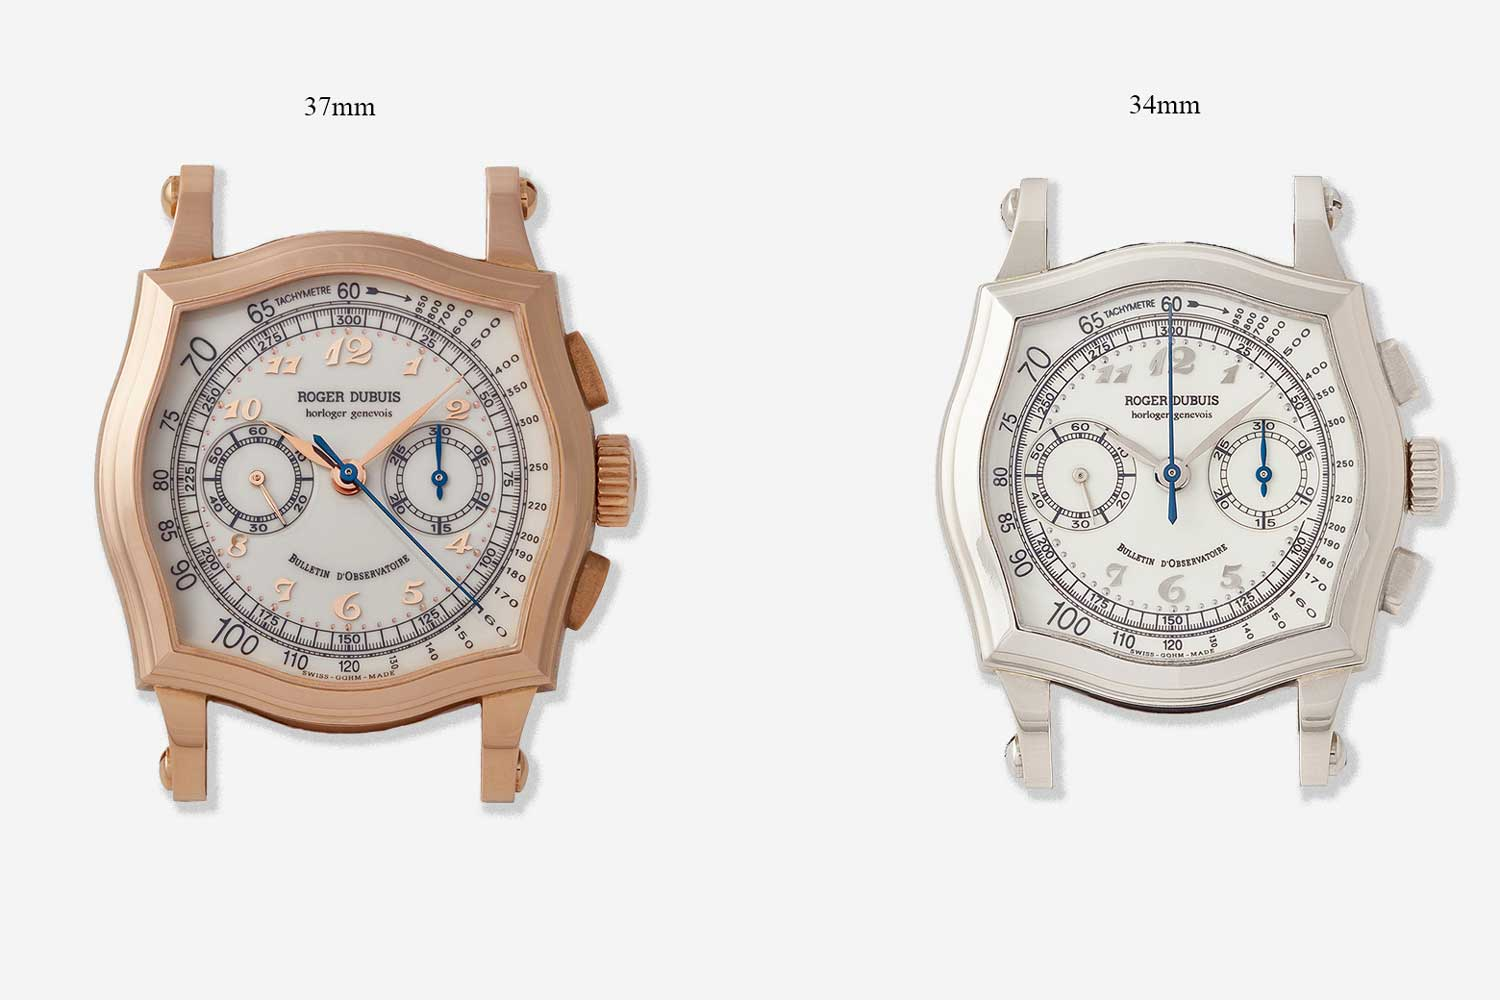 The Sympathie chronograph only came in two sizes, 34mm and 37mm, unlike the Hommage, which also came in 40mm